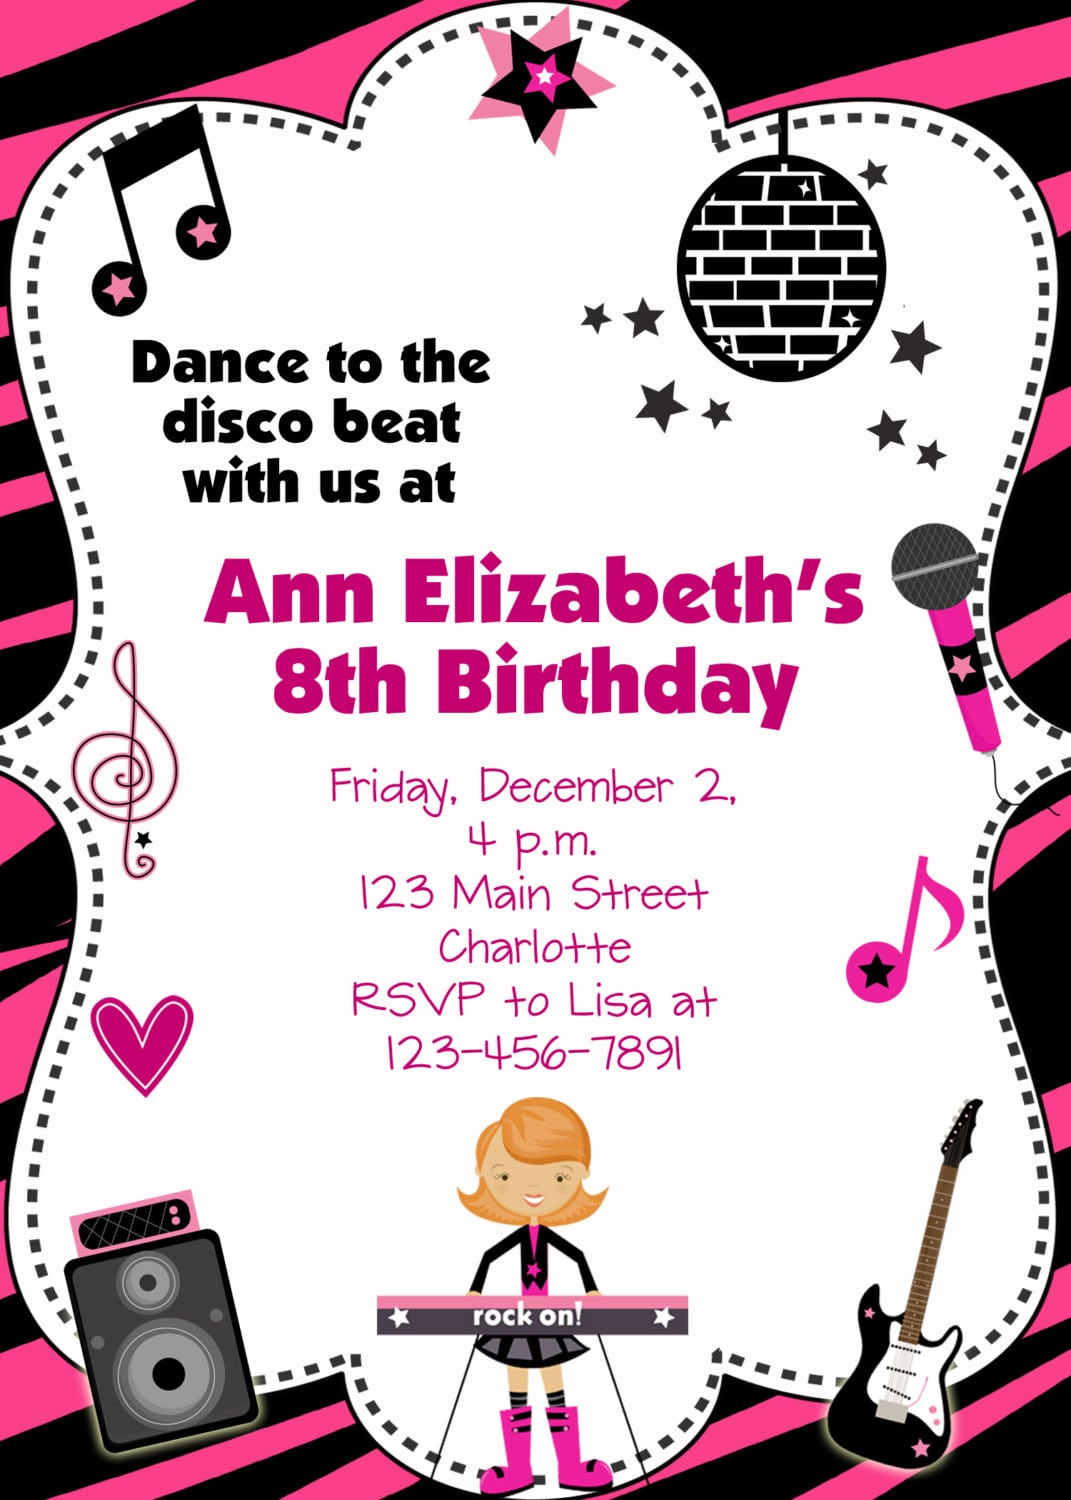 Disco Party Invitations Wording - Life Style By Modernstork.com